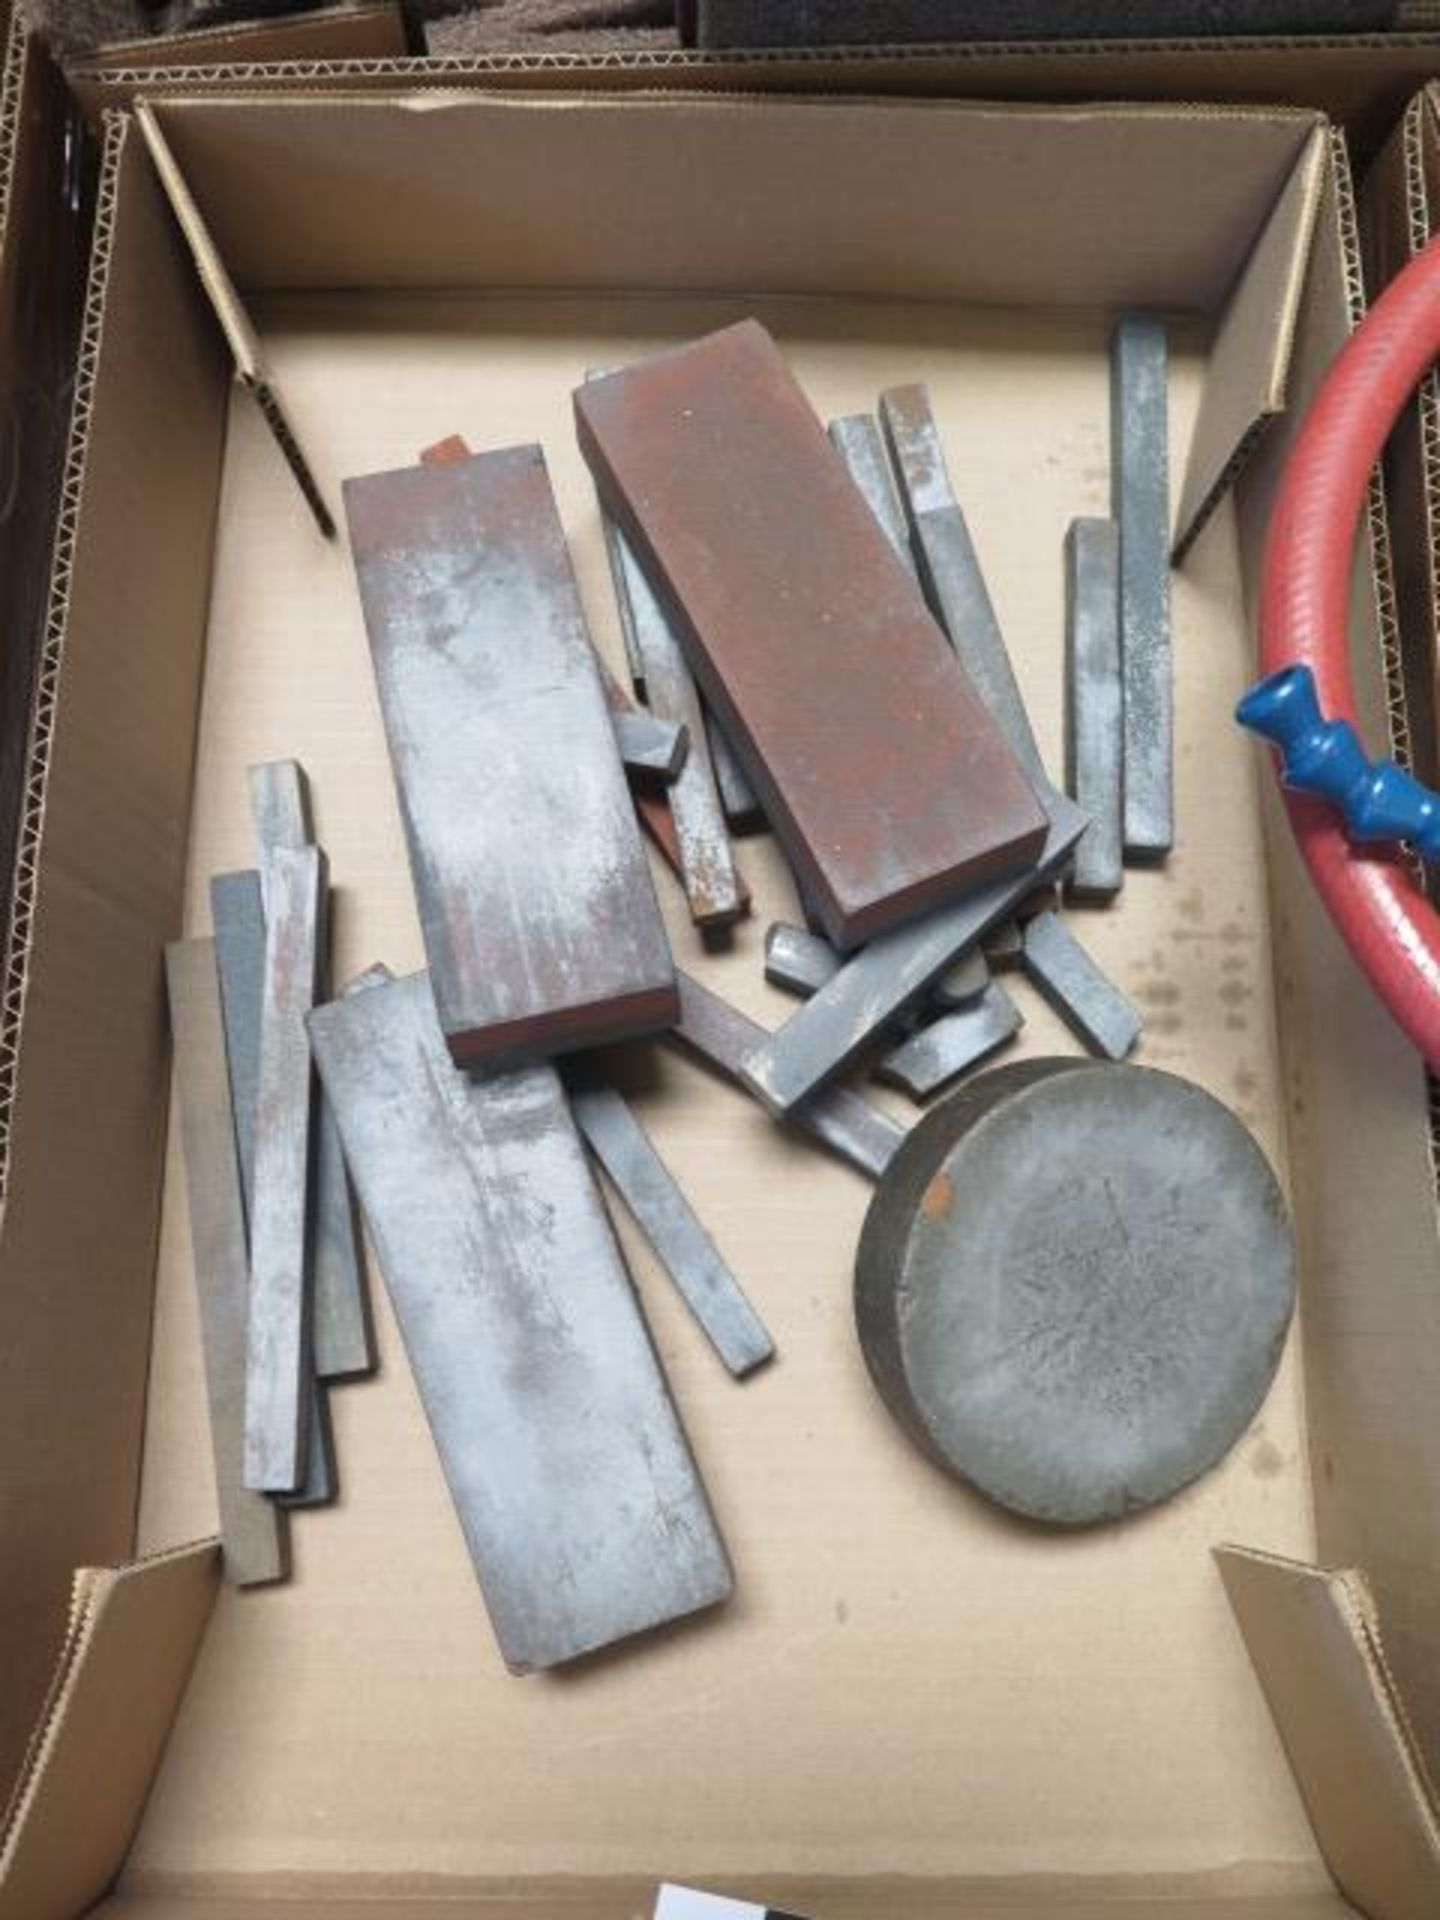 Honing Stones (SOLD AS-IS - NO WARRANTY) - Image 2 of 4